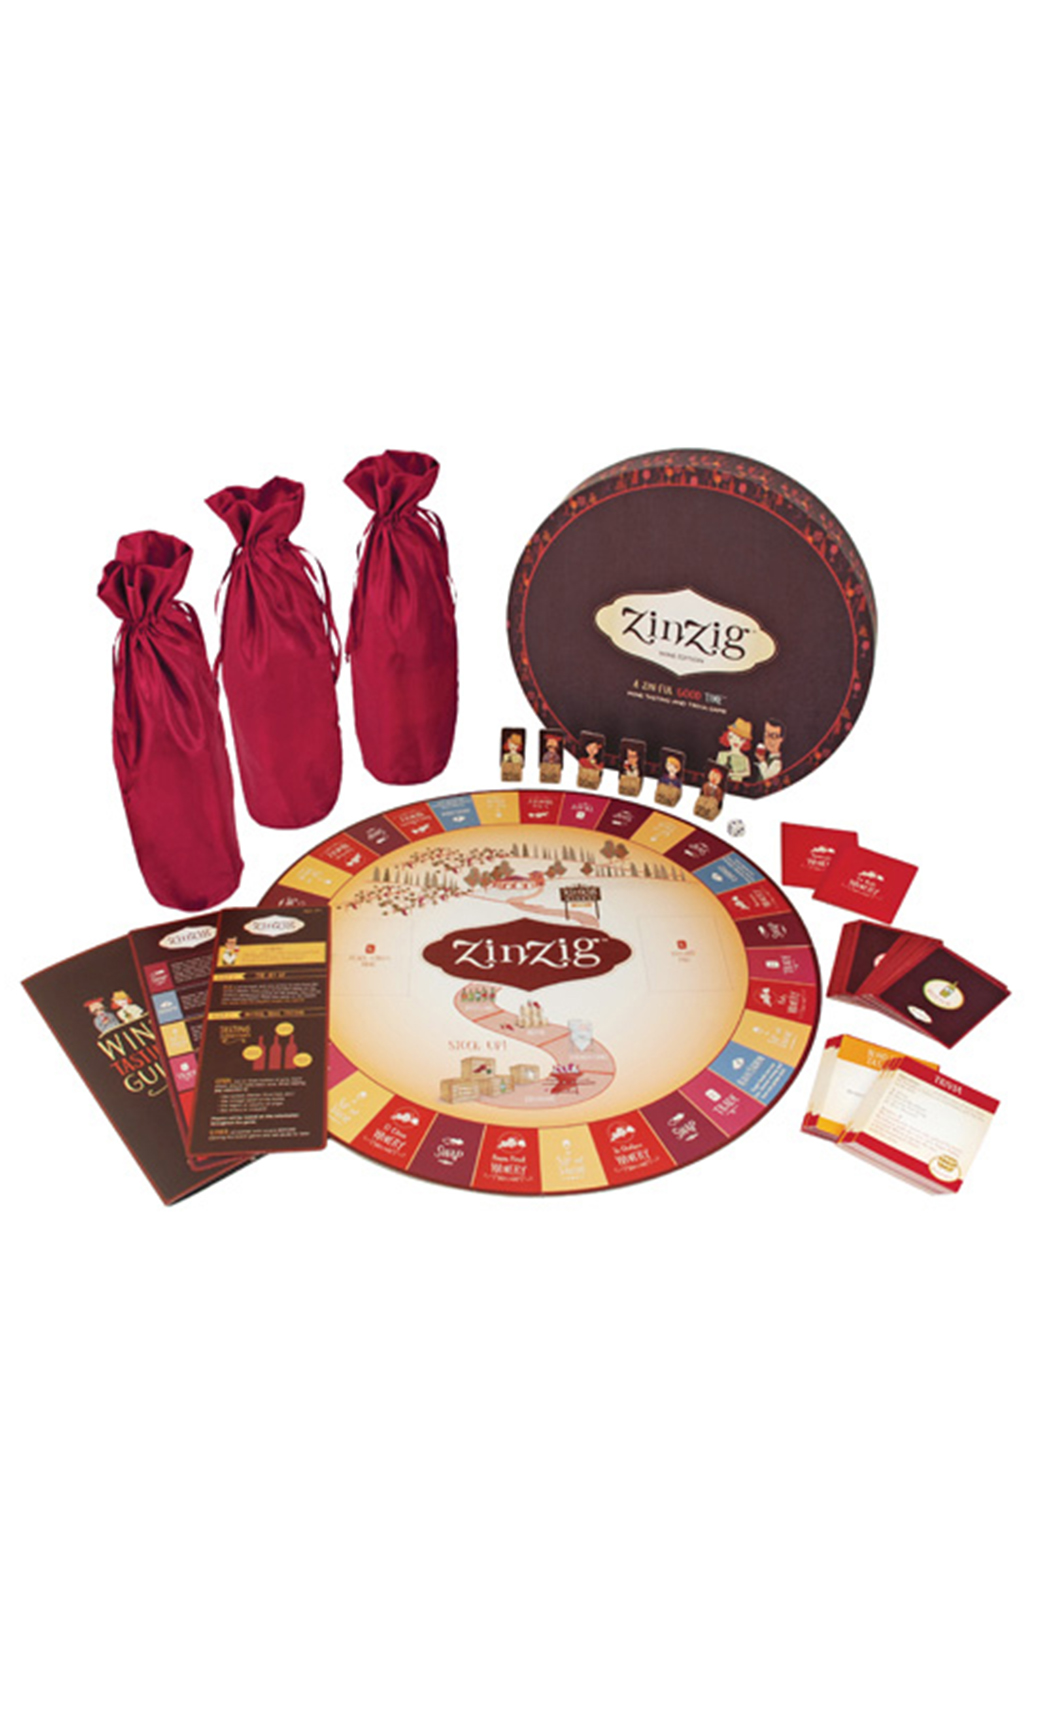 Zinzig : A wine tasting and trivia game